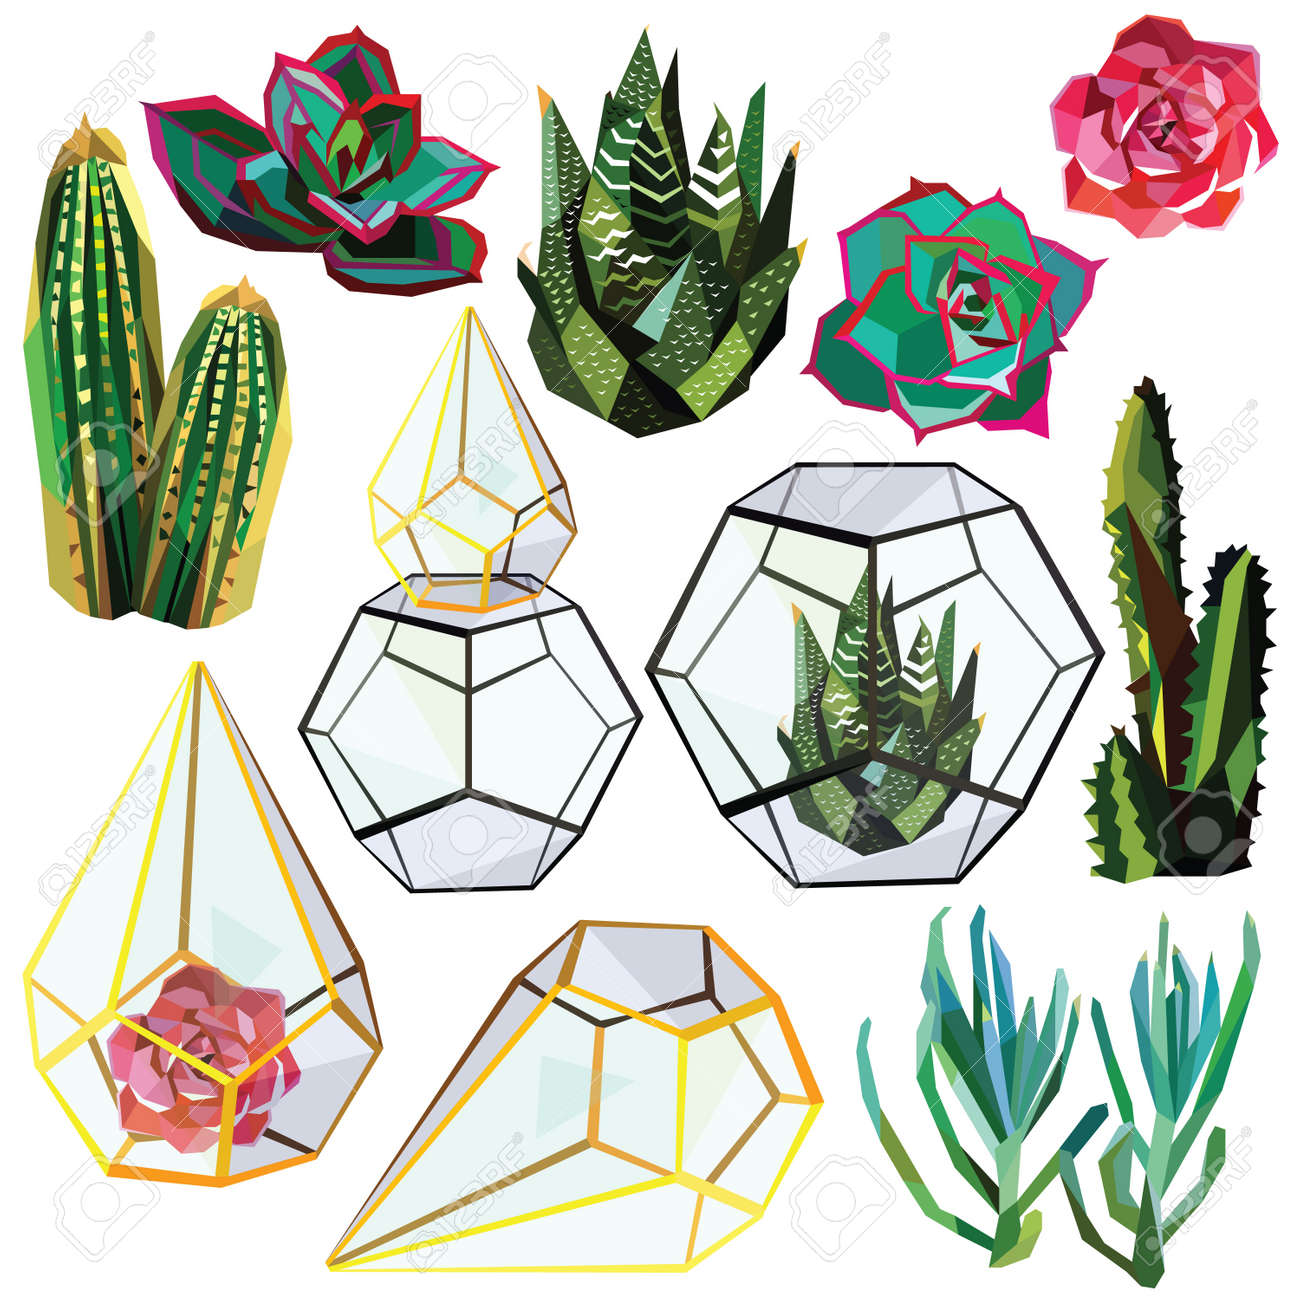 Cactus Succulent Flower Low Poly Set With Glass Terrariums Vector Royalty Free Cliparts Vectors And Stock Illustration Image 55722277